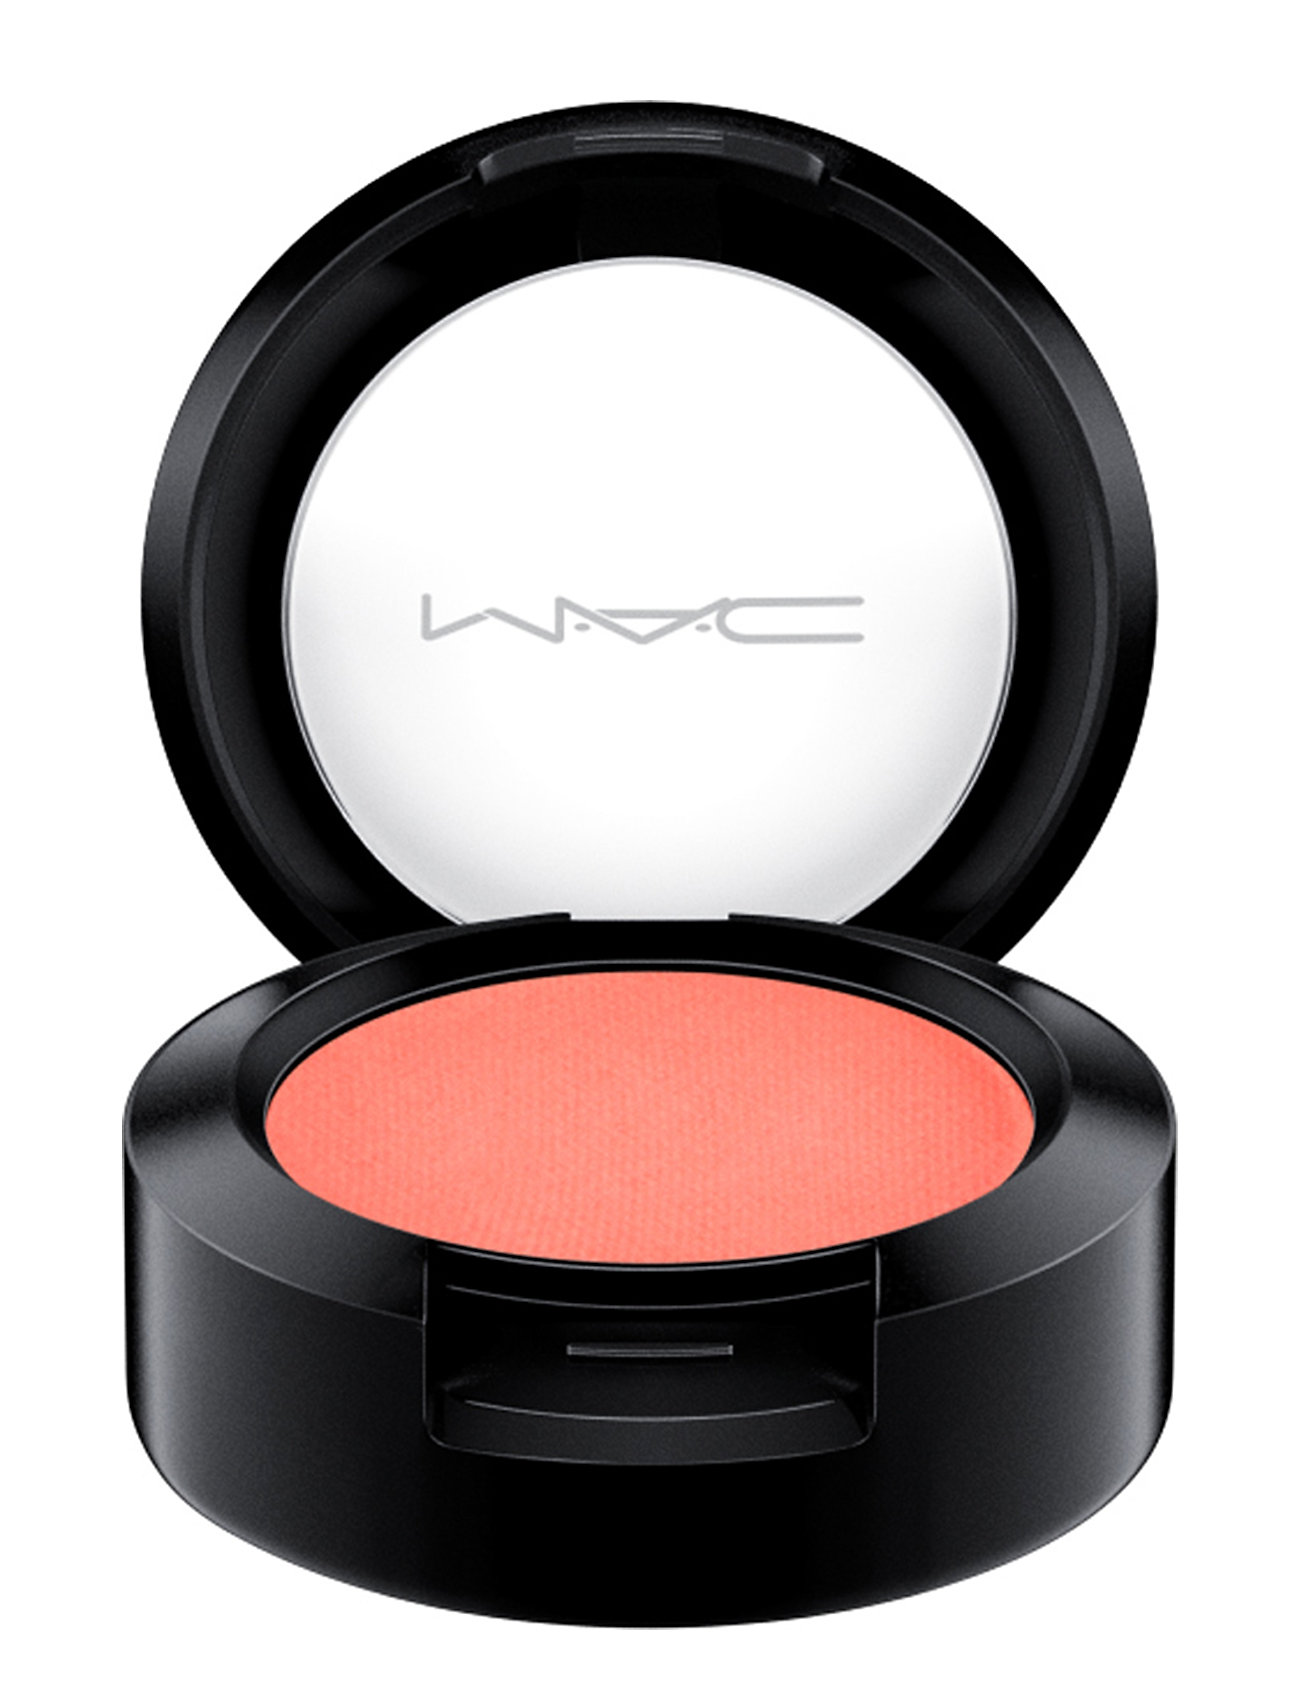 Image of Small Eye Shadow Beauty WOMEN Makeup Eyes Eyeshadow - Not Palettes Blå M.A.C. (3260673071)